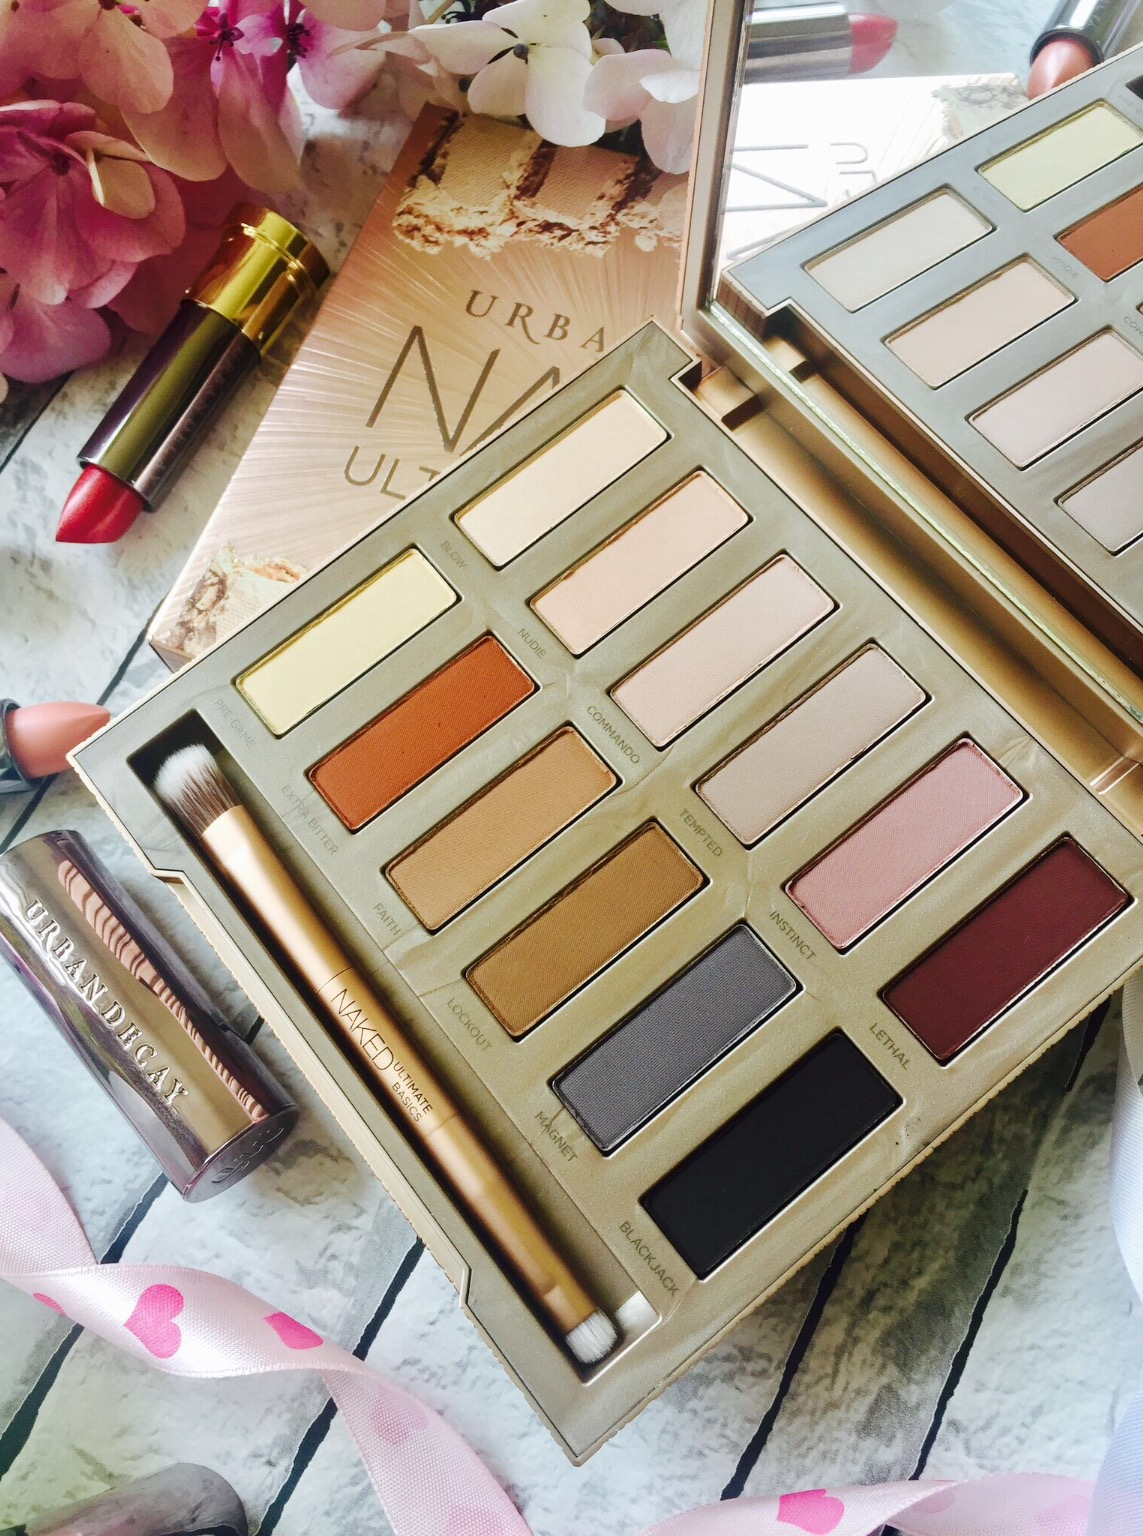 Urban Decay Naked Ultimate Basics Eyeshadow Palette and swatches